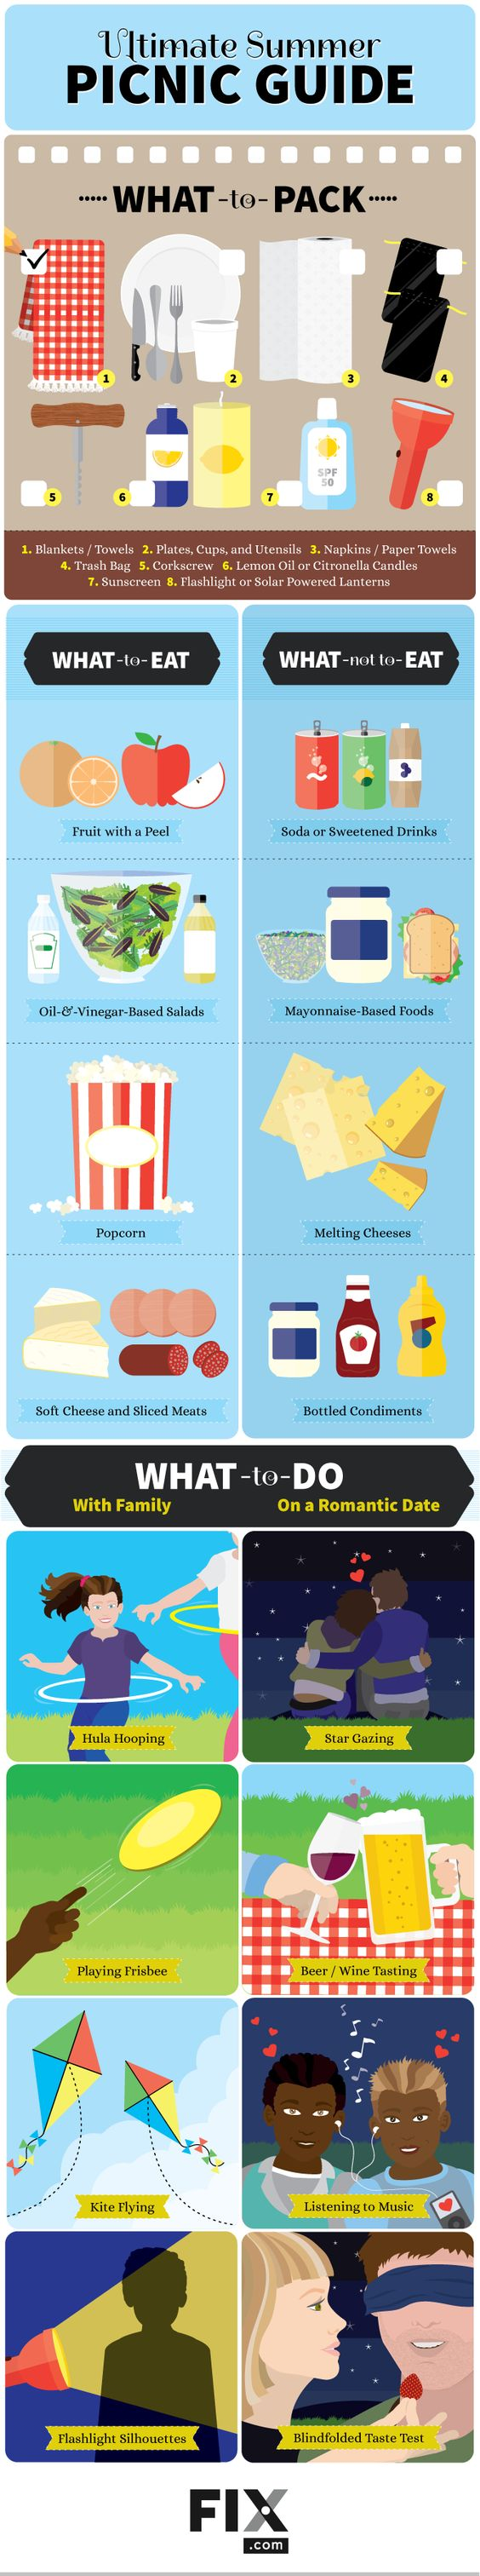 The Ultimate Summer Picnic Guide #infographic #Picnic #Travel